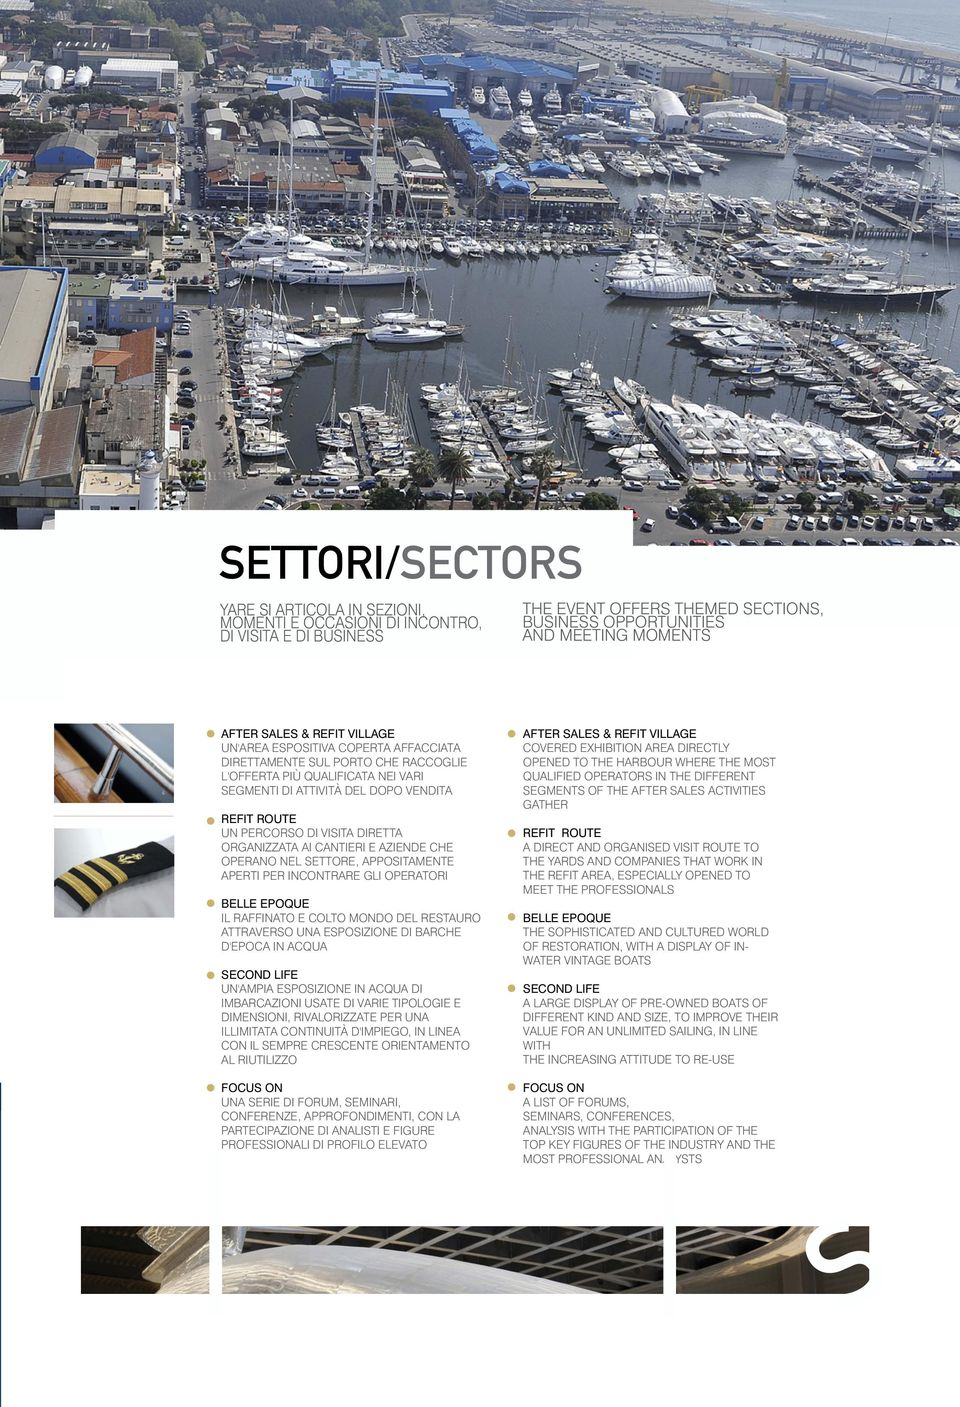 EXHIBITION AREA DIRECTLY OPENED TO THE HARBOUR WHERE THE MOST QUALIFIED OPERATORS IN THE DIFFERENT SEGMENTS OF THE AFTER SALES ACTIVITIES GATHER UN PERCORSO DI VISITA DIRETTA ORGANIZZATA AI CANTIERI